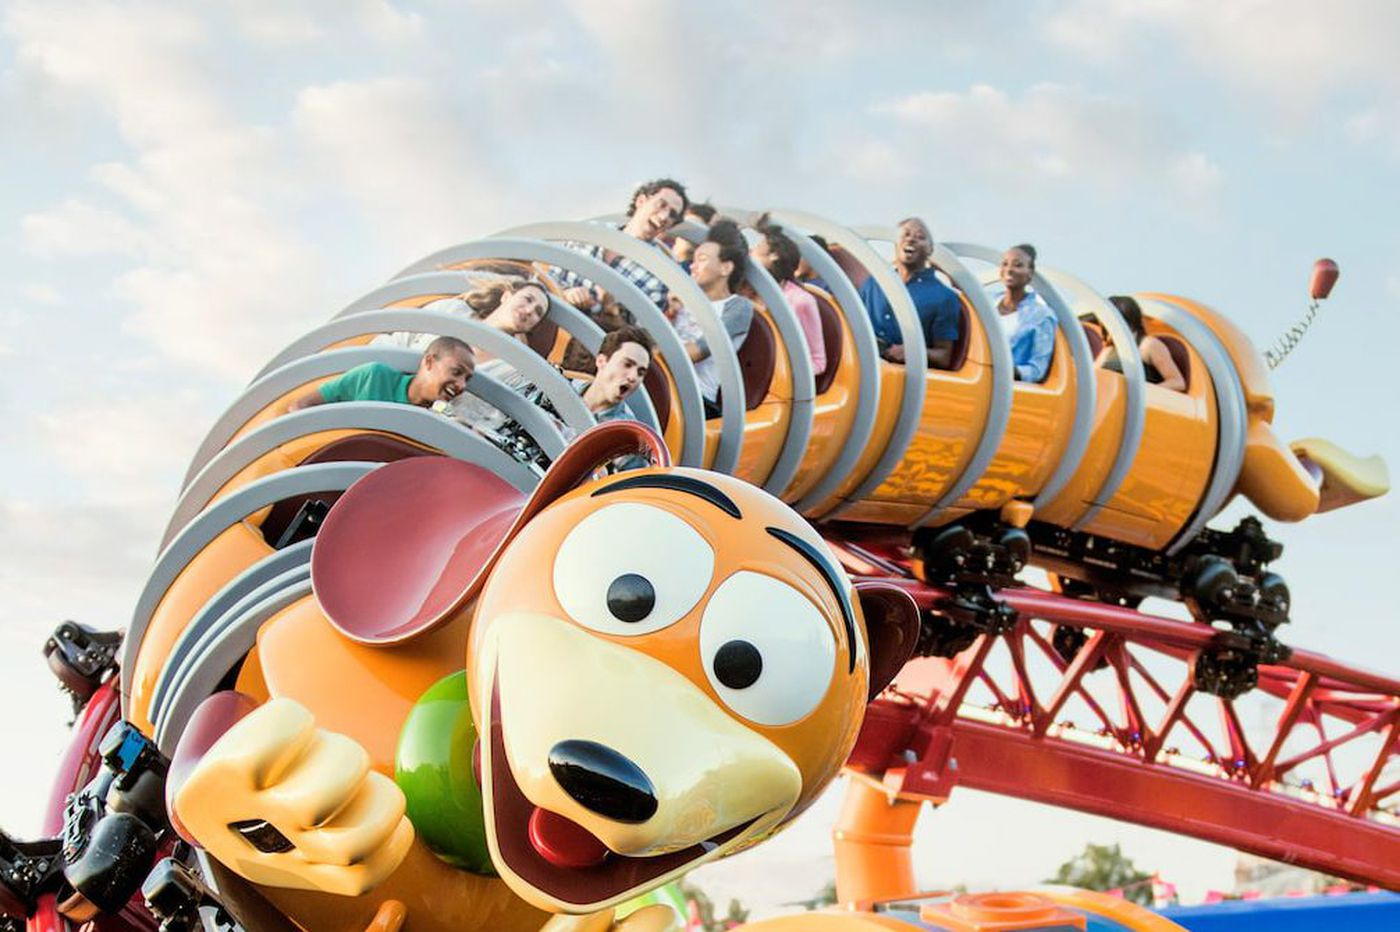 At Disney World S Toy Story Land Larger Than Life Charm